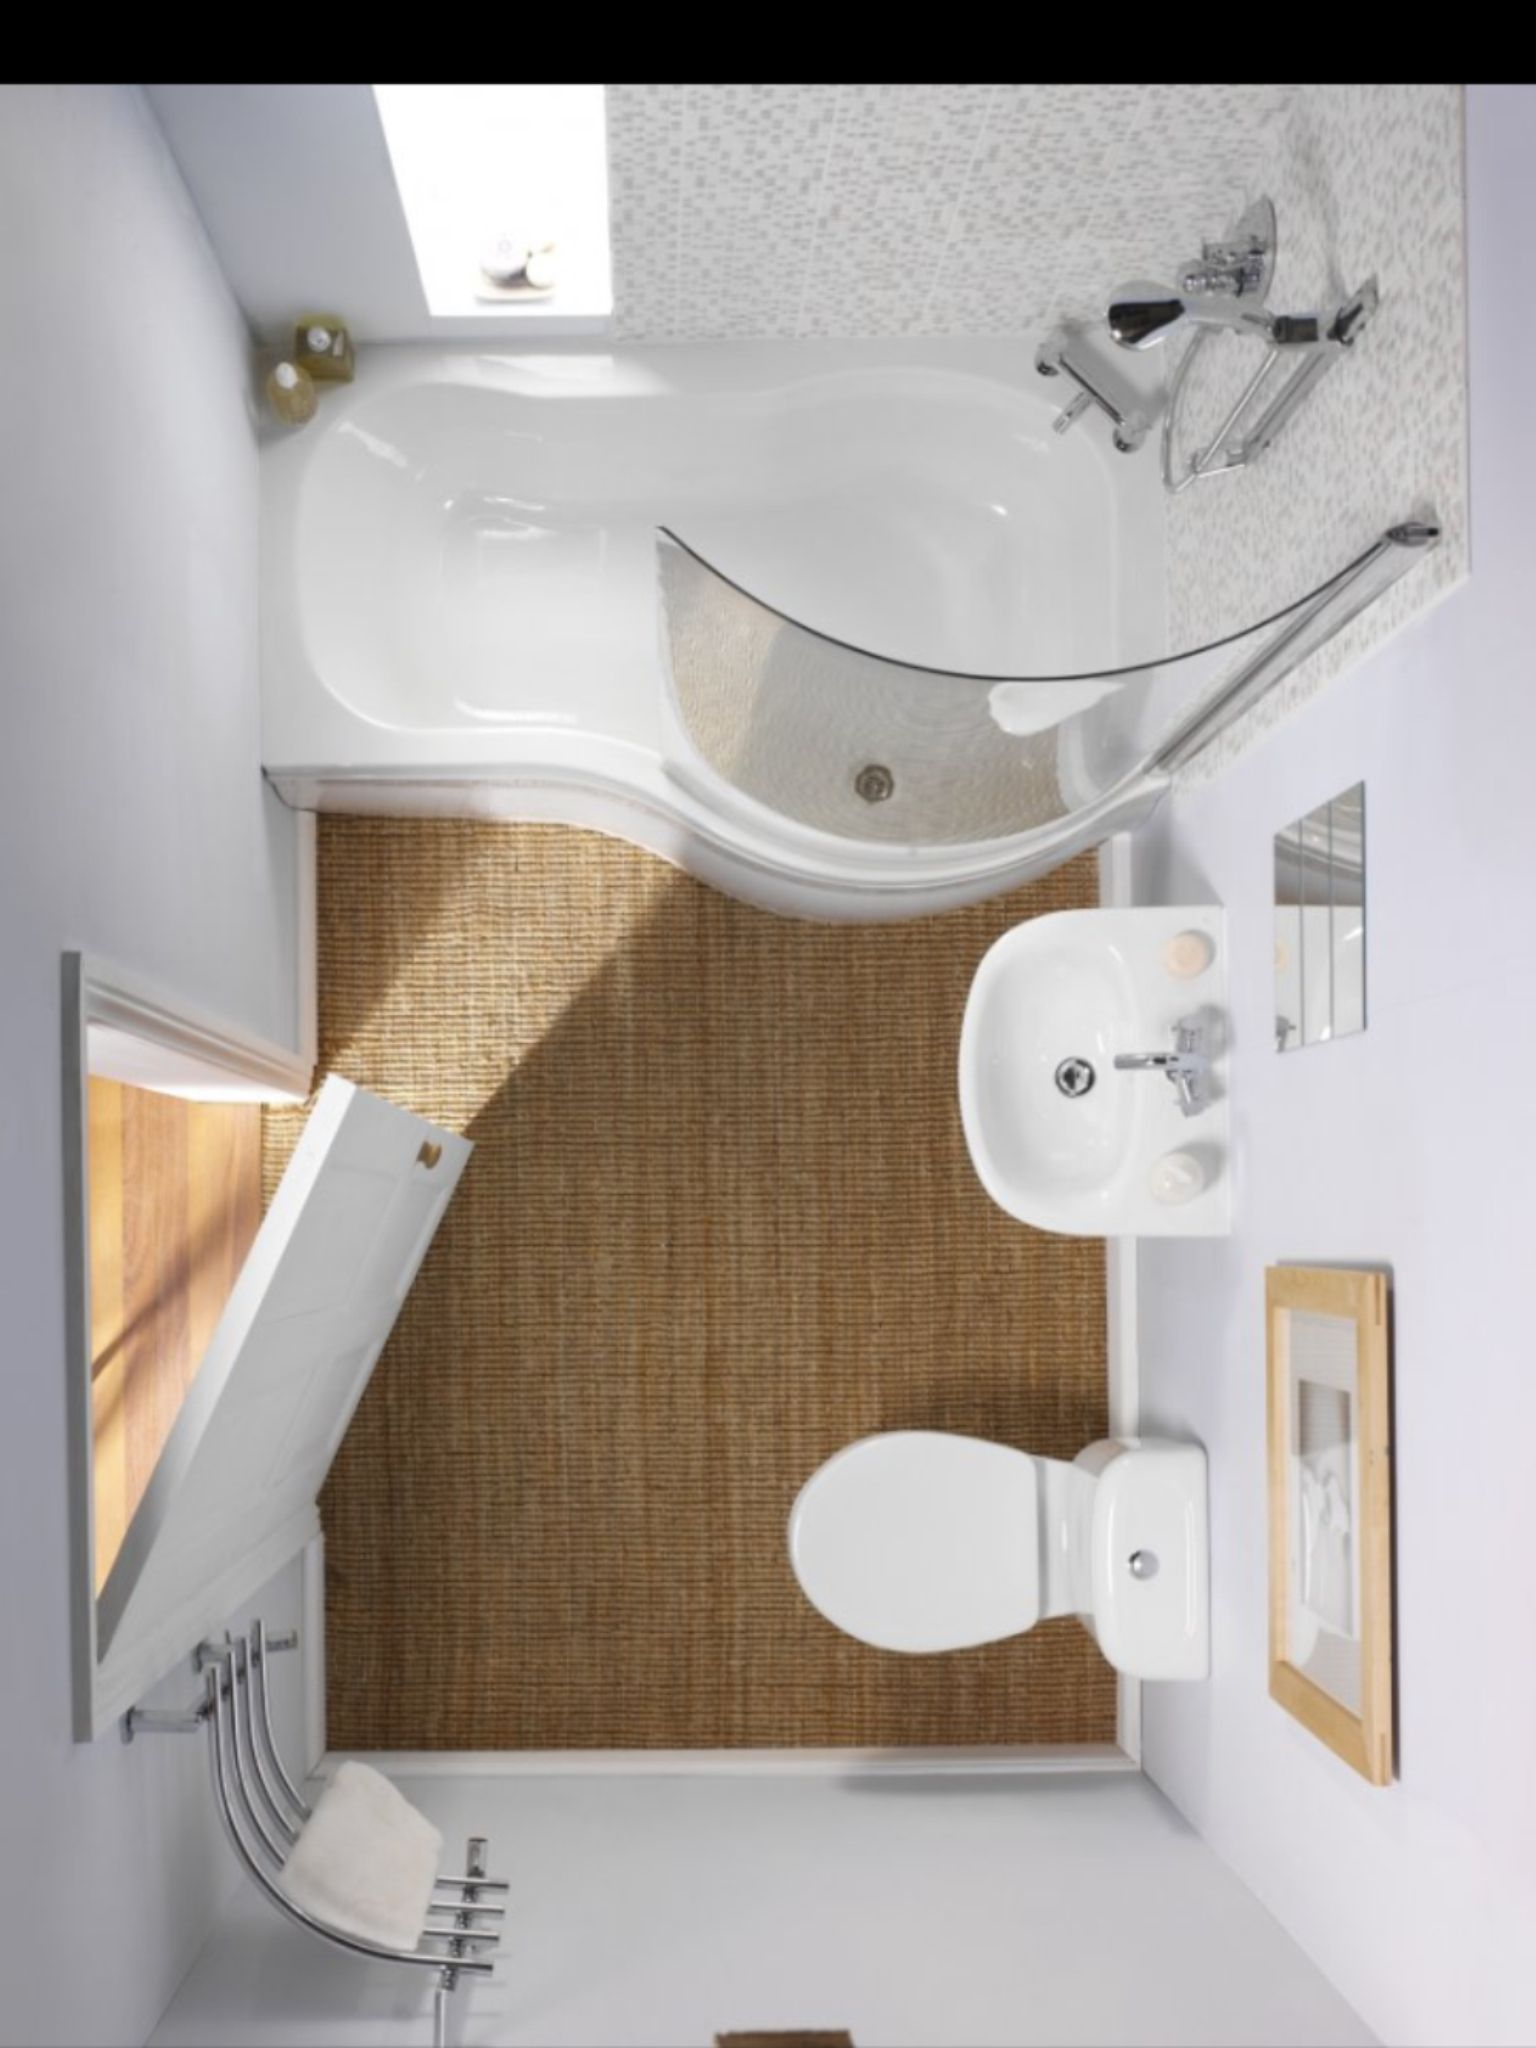 10+ Beautiful Half Bathroom Ideas for Your Home | Pinterest ...